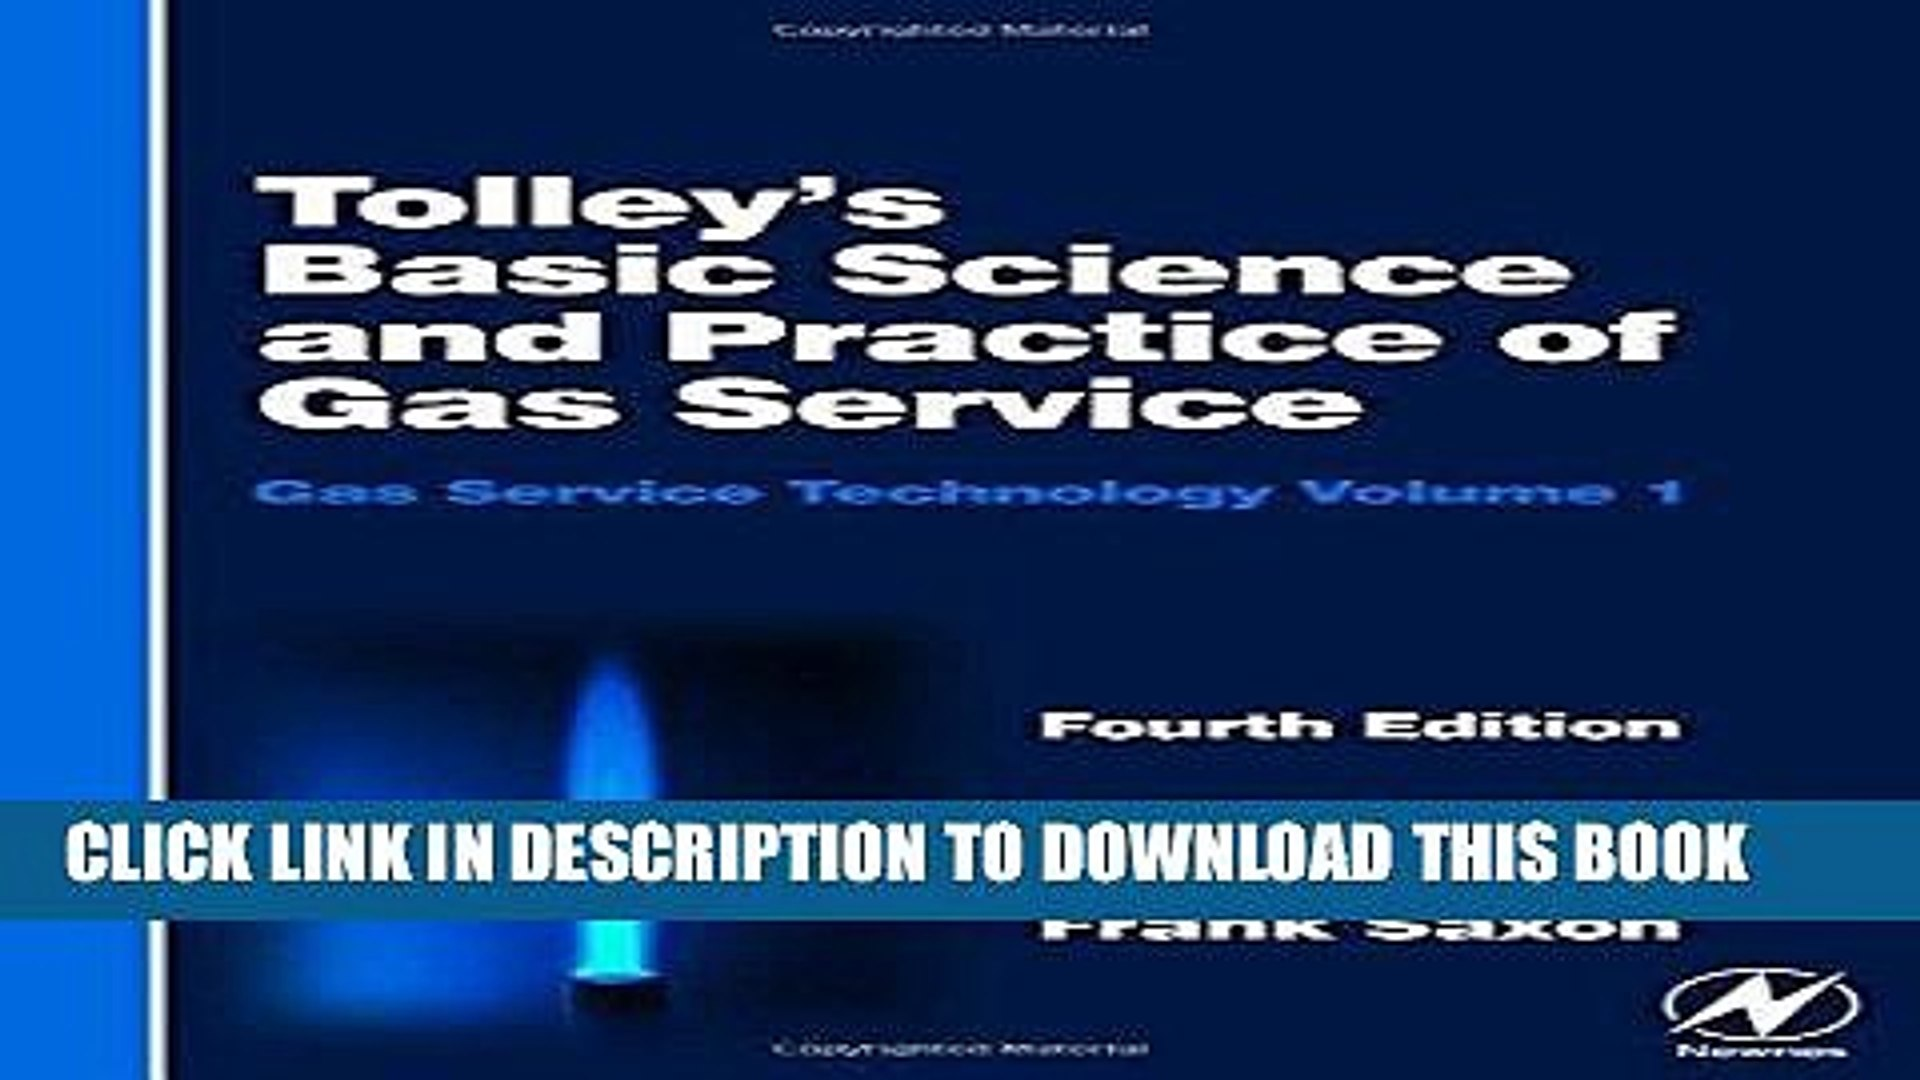 Tolleys Basic Science and Practice of Gas Service, Fourth Edition (Gas Service Technology, Volume 1)